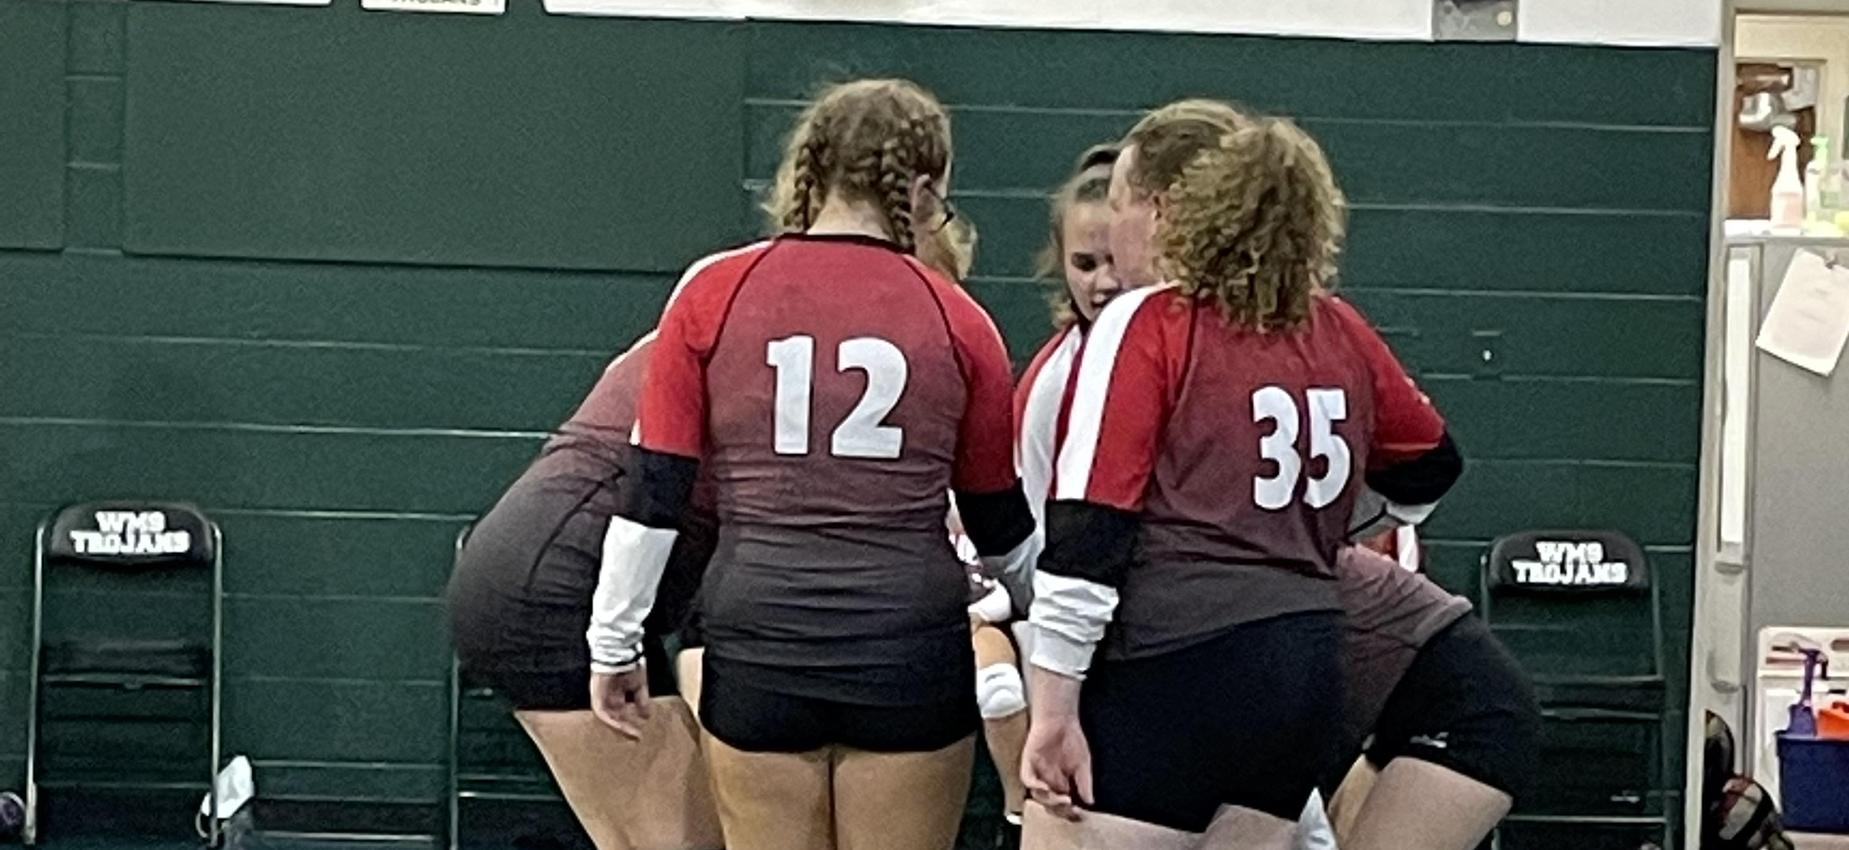 Volleyball players gather in a huddle in a gym.